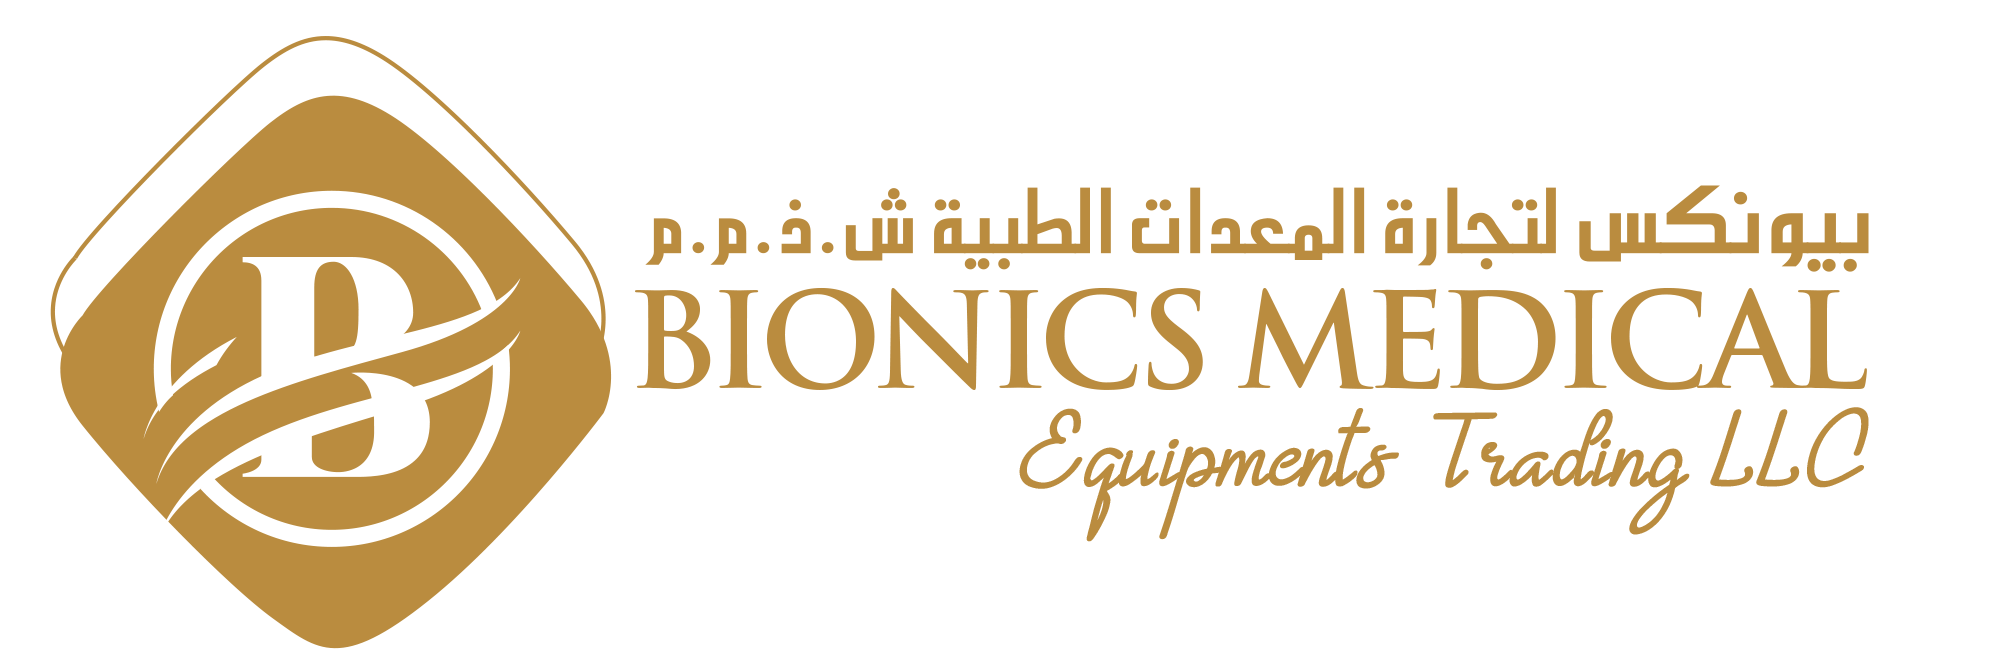 Bionics Medical Services